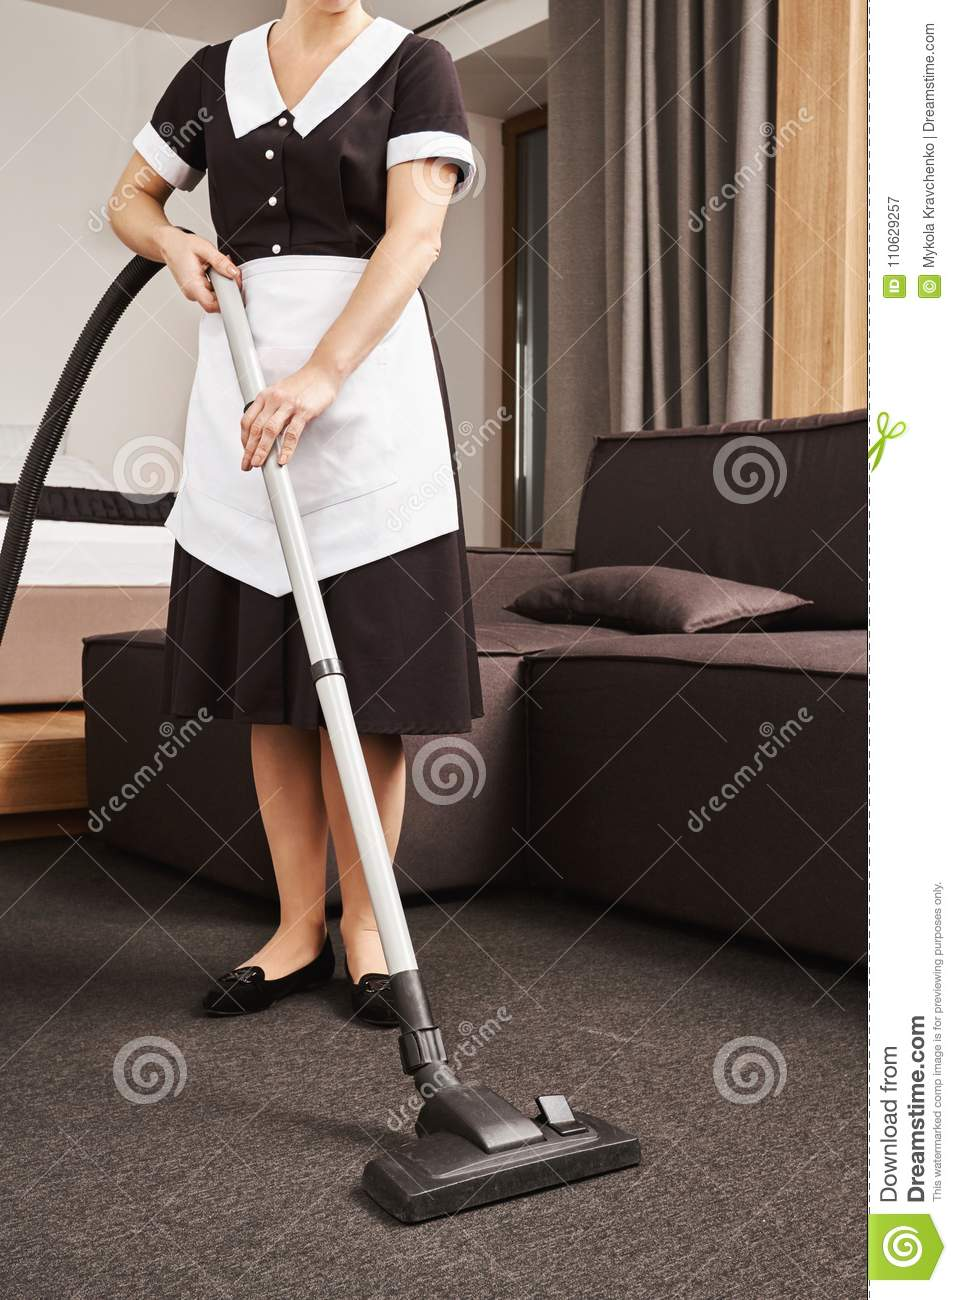 Wipe mess off. Horizontal cropped shot of maid in uniform cleaning living room of employer with vacuum cleaner, removing